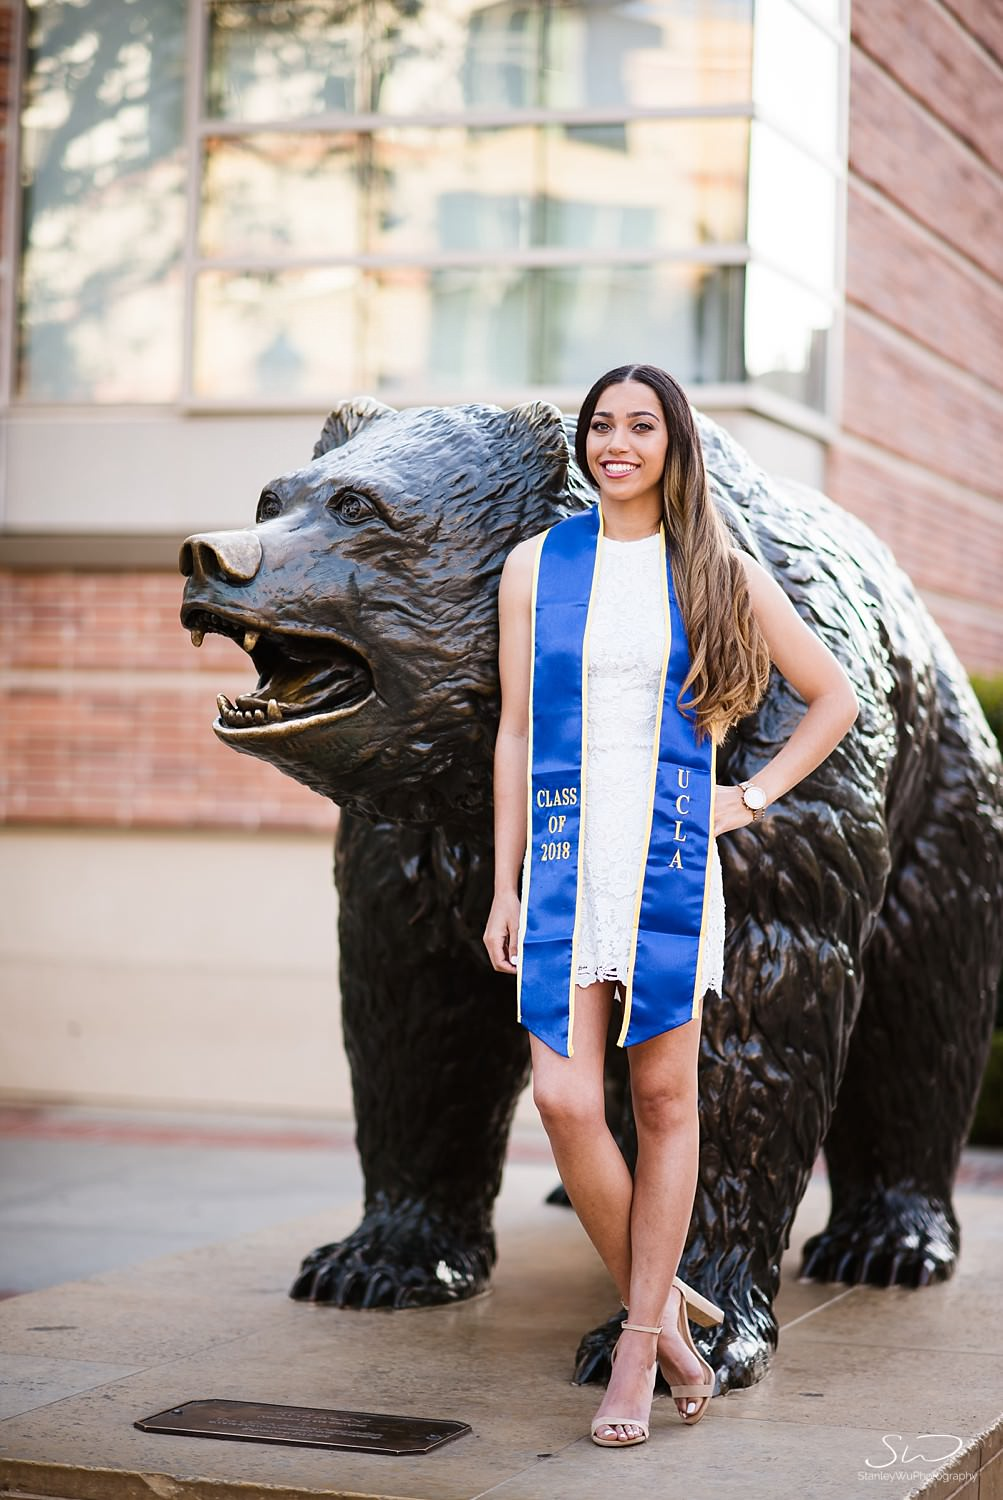 los-angeles-ucla-graduation-senior-portraits_0003.jpg